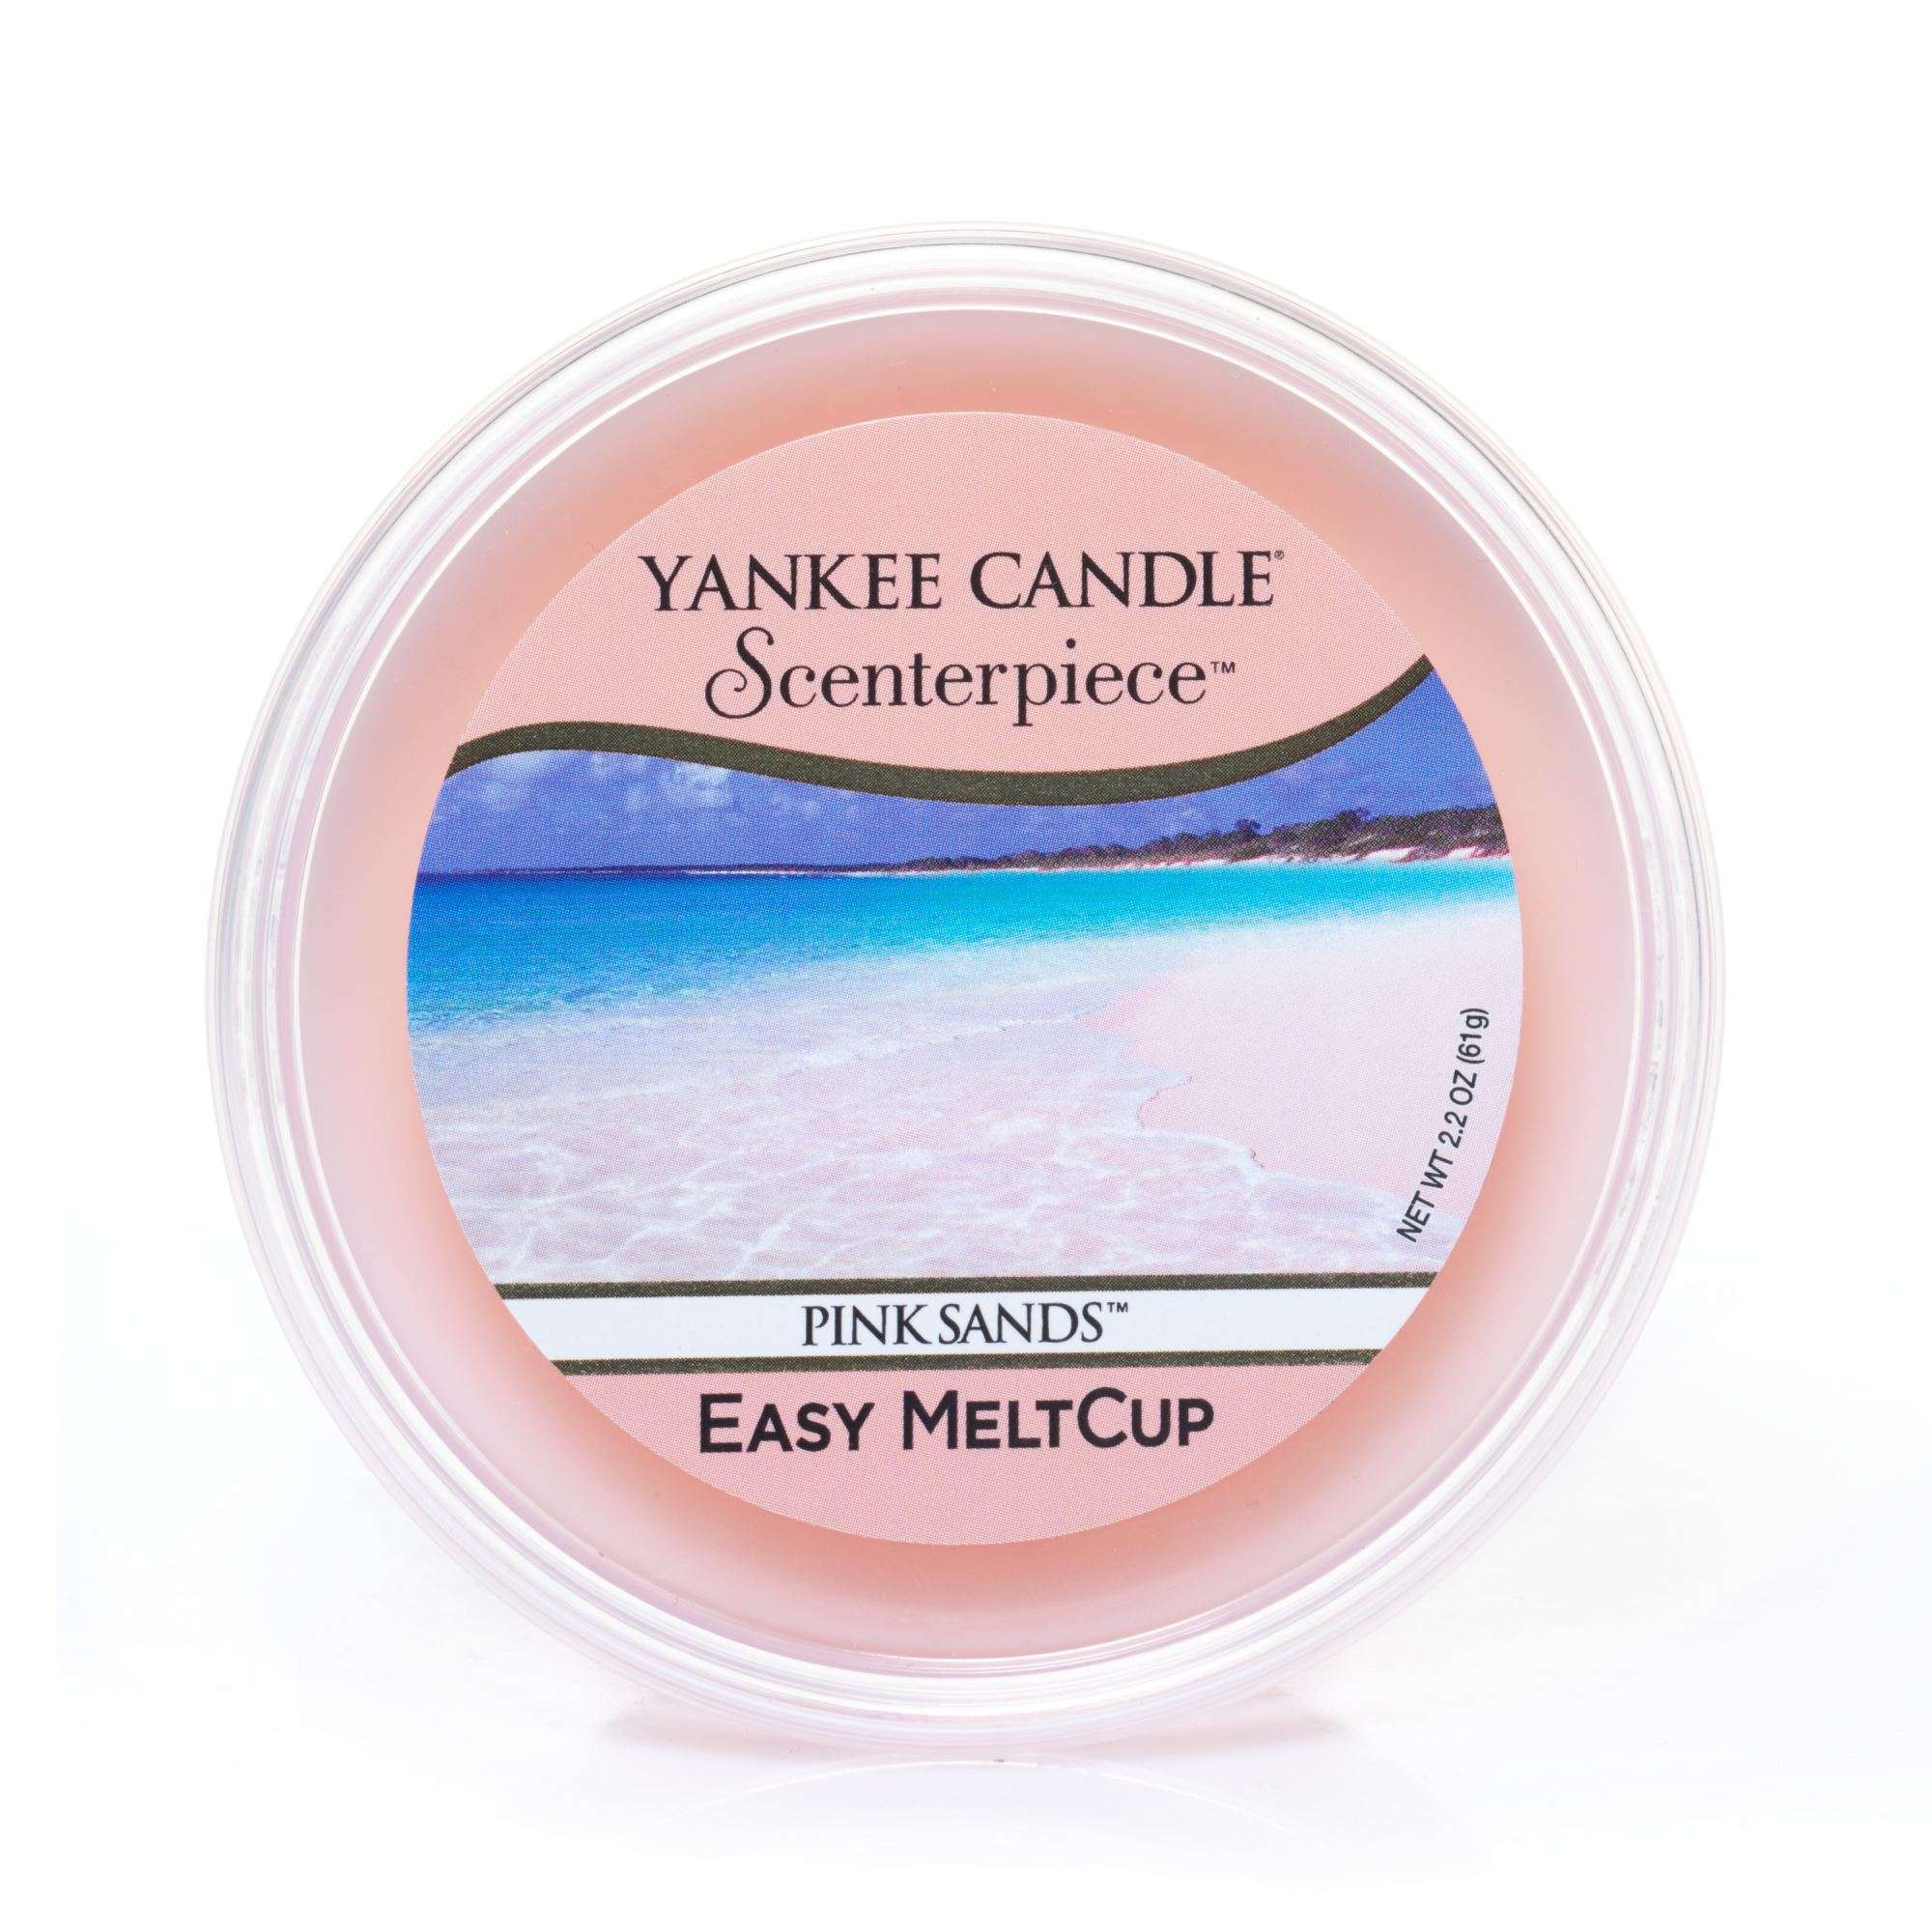 Huis Yankee Candle Scenterpiece Easy Meltcup Soft Blanket 61 G Becher Luxclusif Com